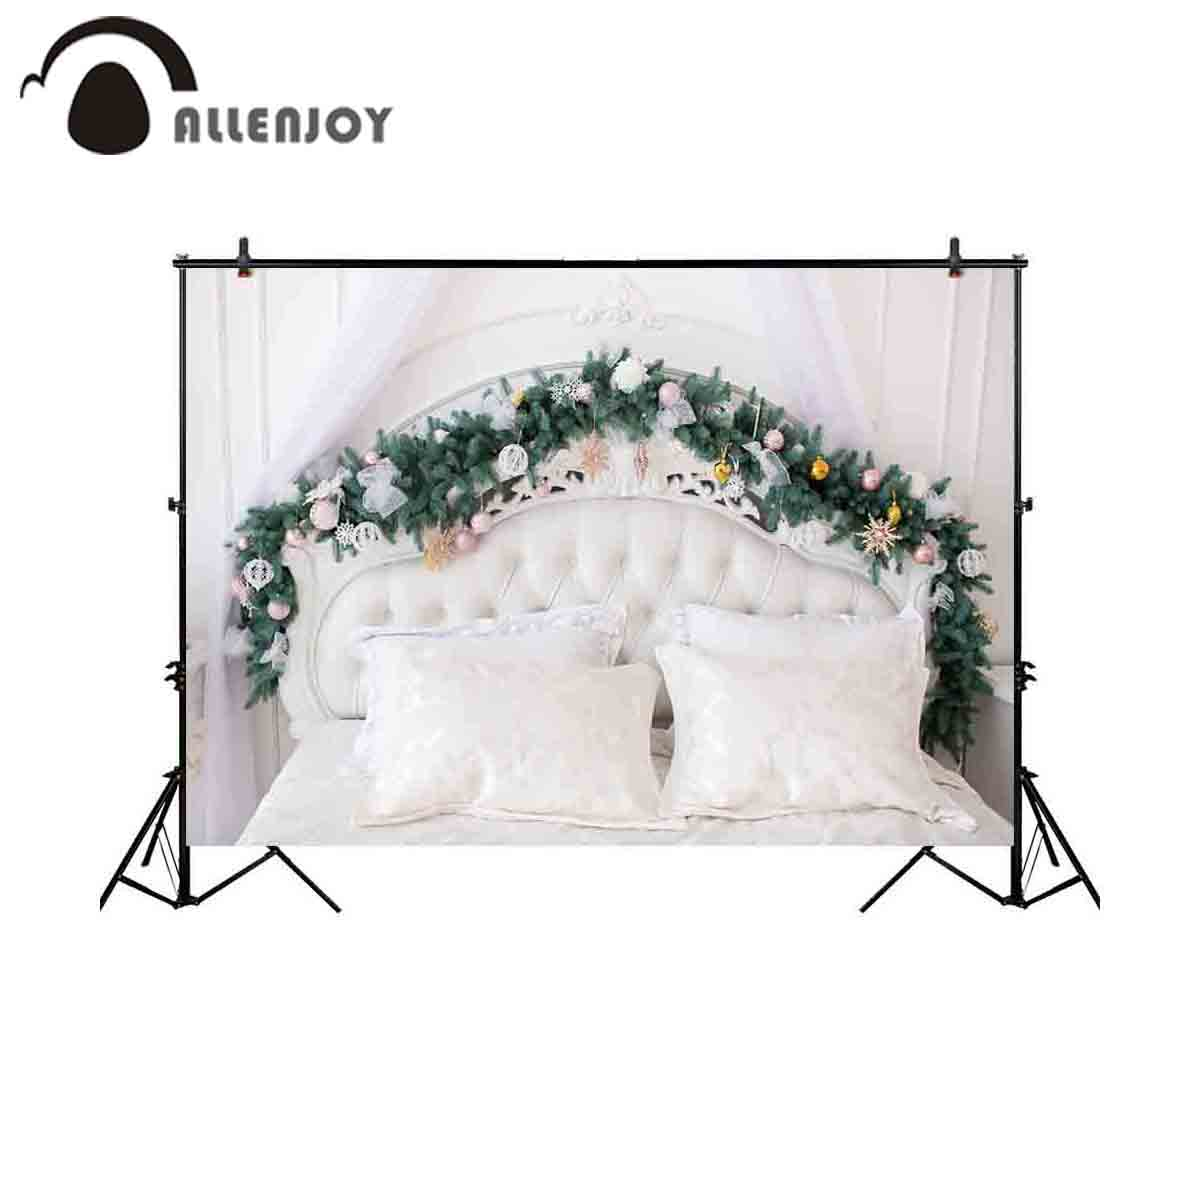 Allenjoy photography background Christmas headboard tufted pine tree leaf backdrop photocall photo studio photobooth fabric allenjoy wedding custom photography backdrop photo studio wood party decor celebrate background photocall photobooth photocall